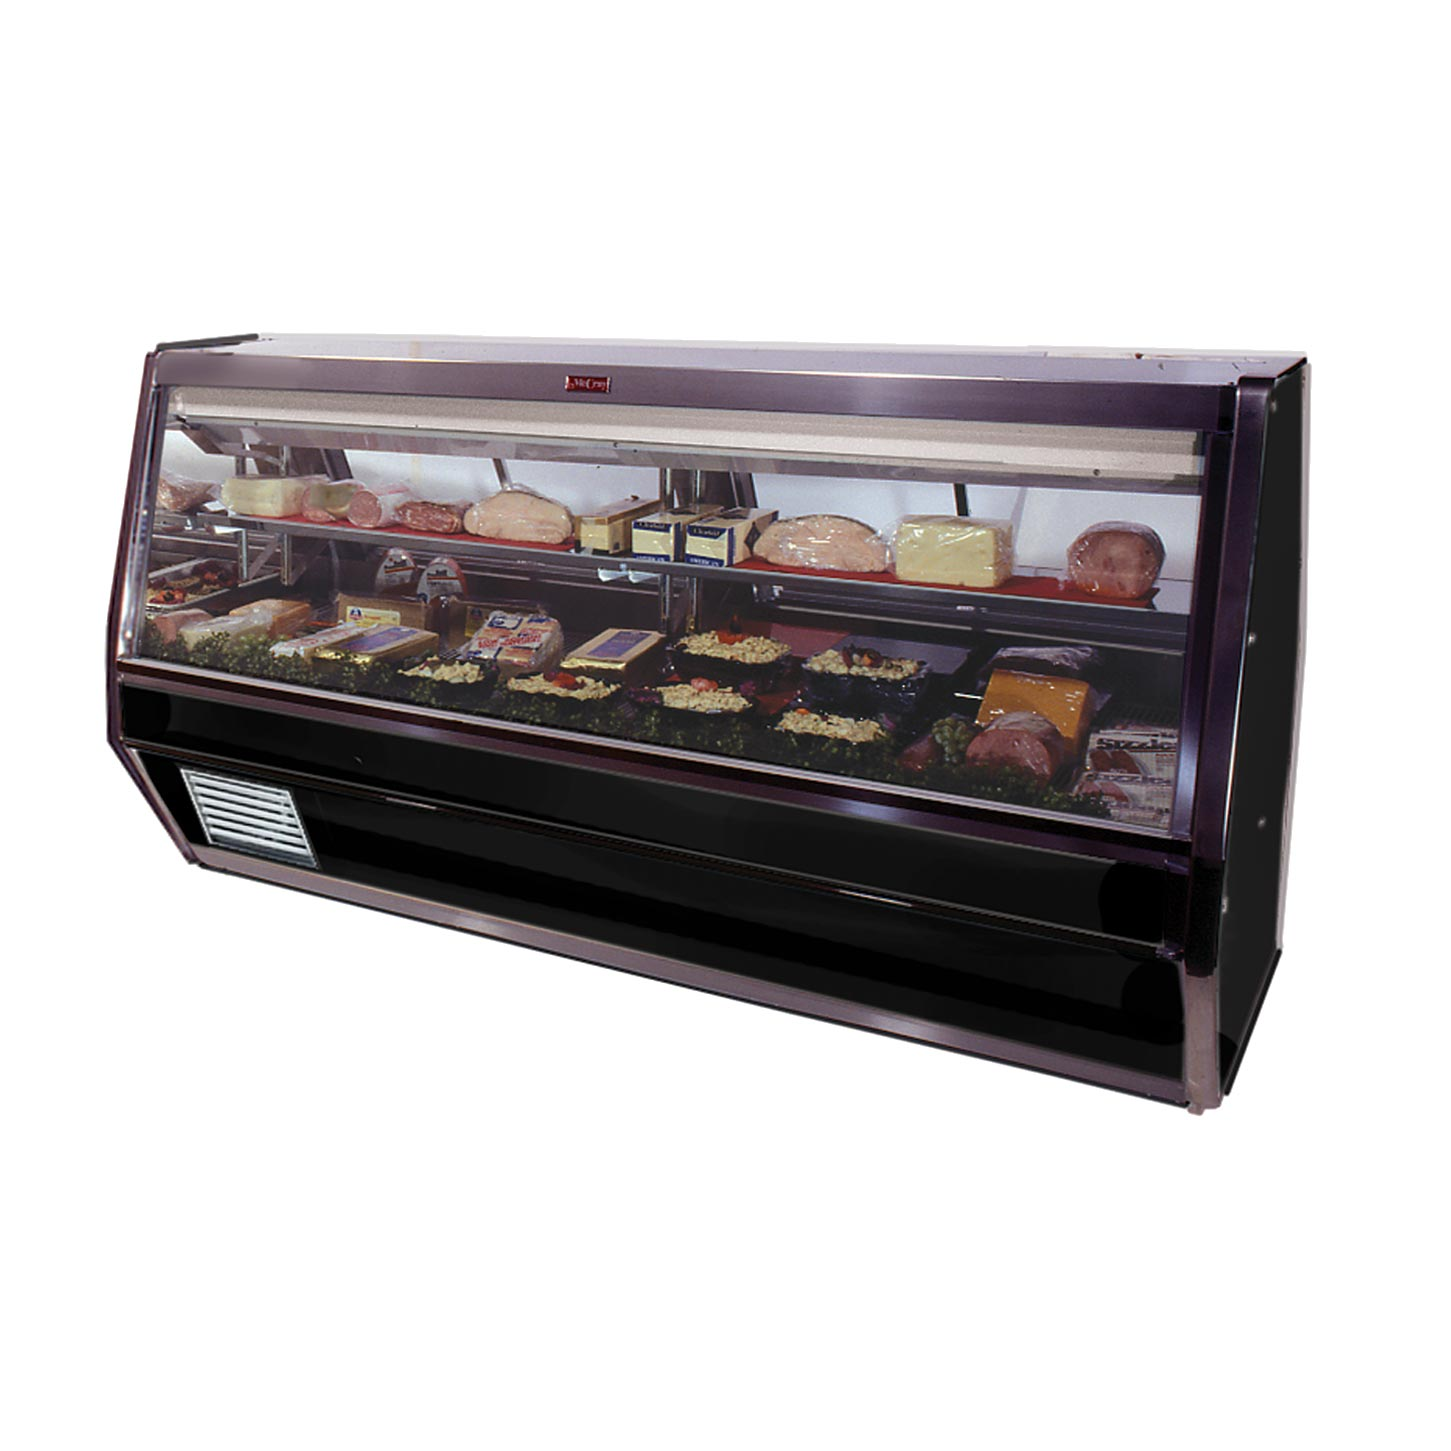 Howard-McCray R-CDS40E-4-BE-LED display case, refrigerated deli